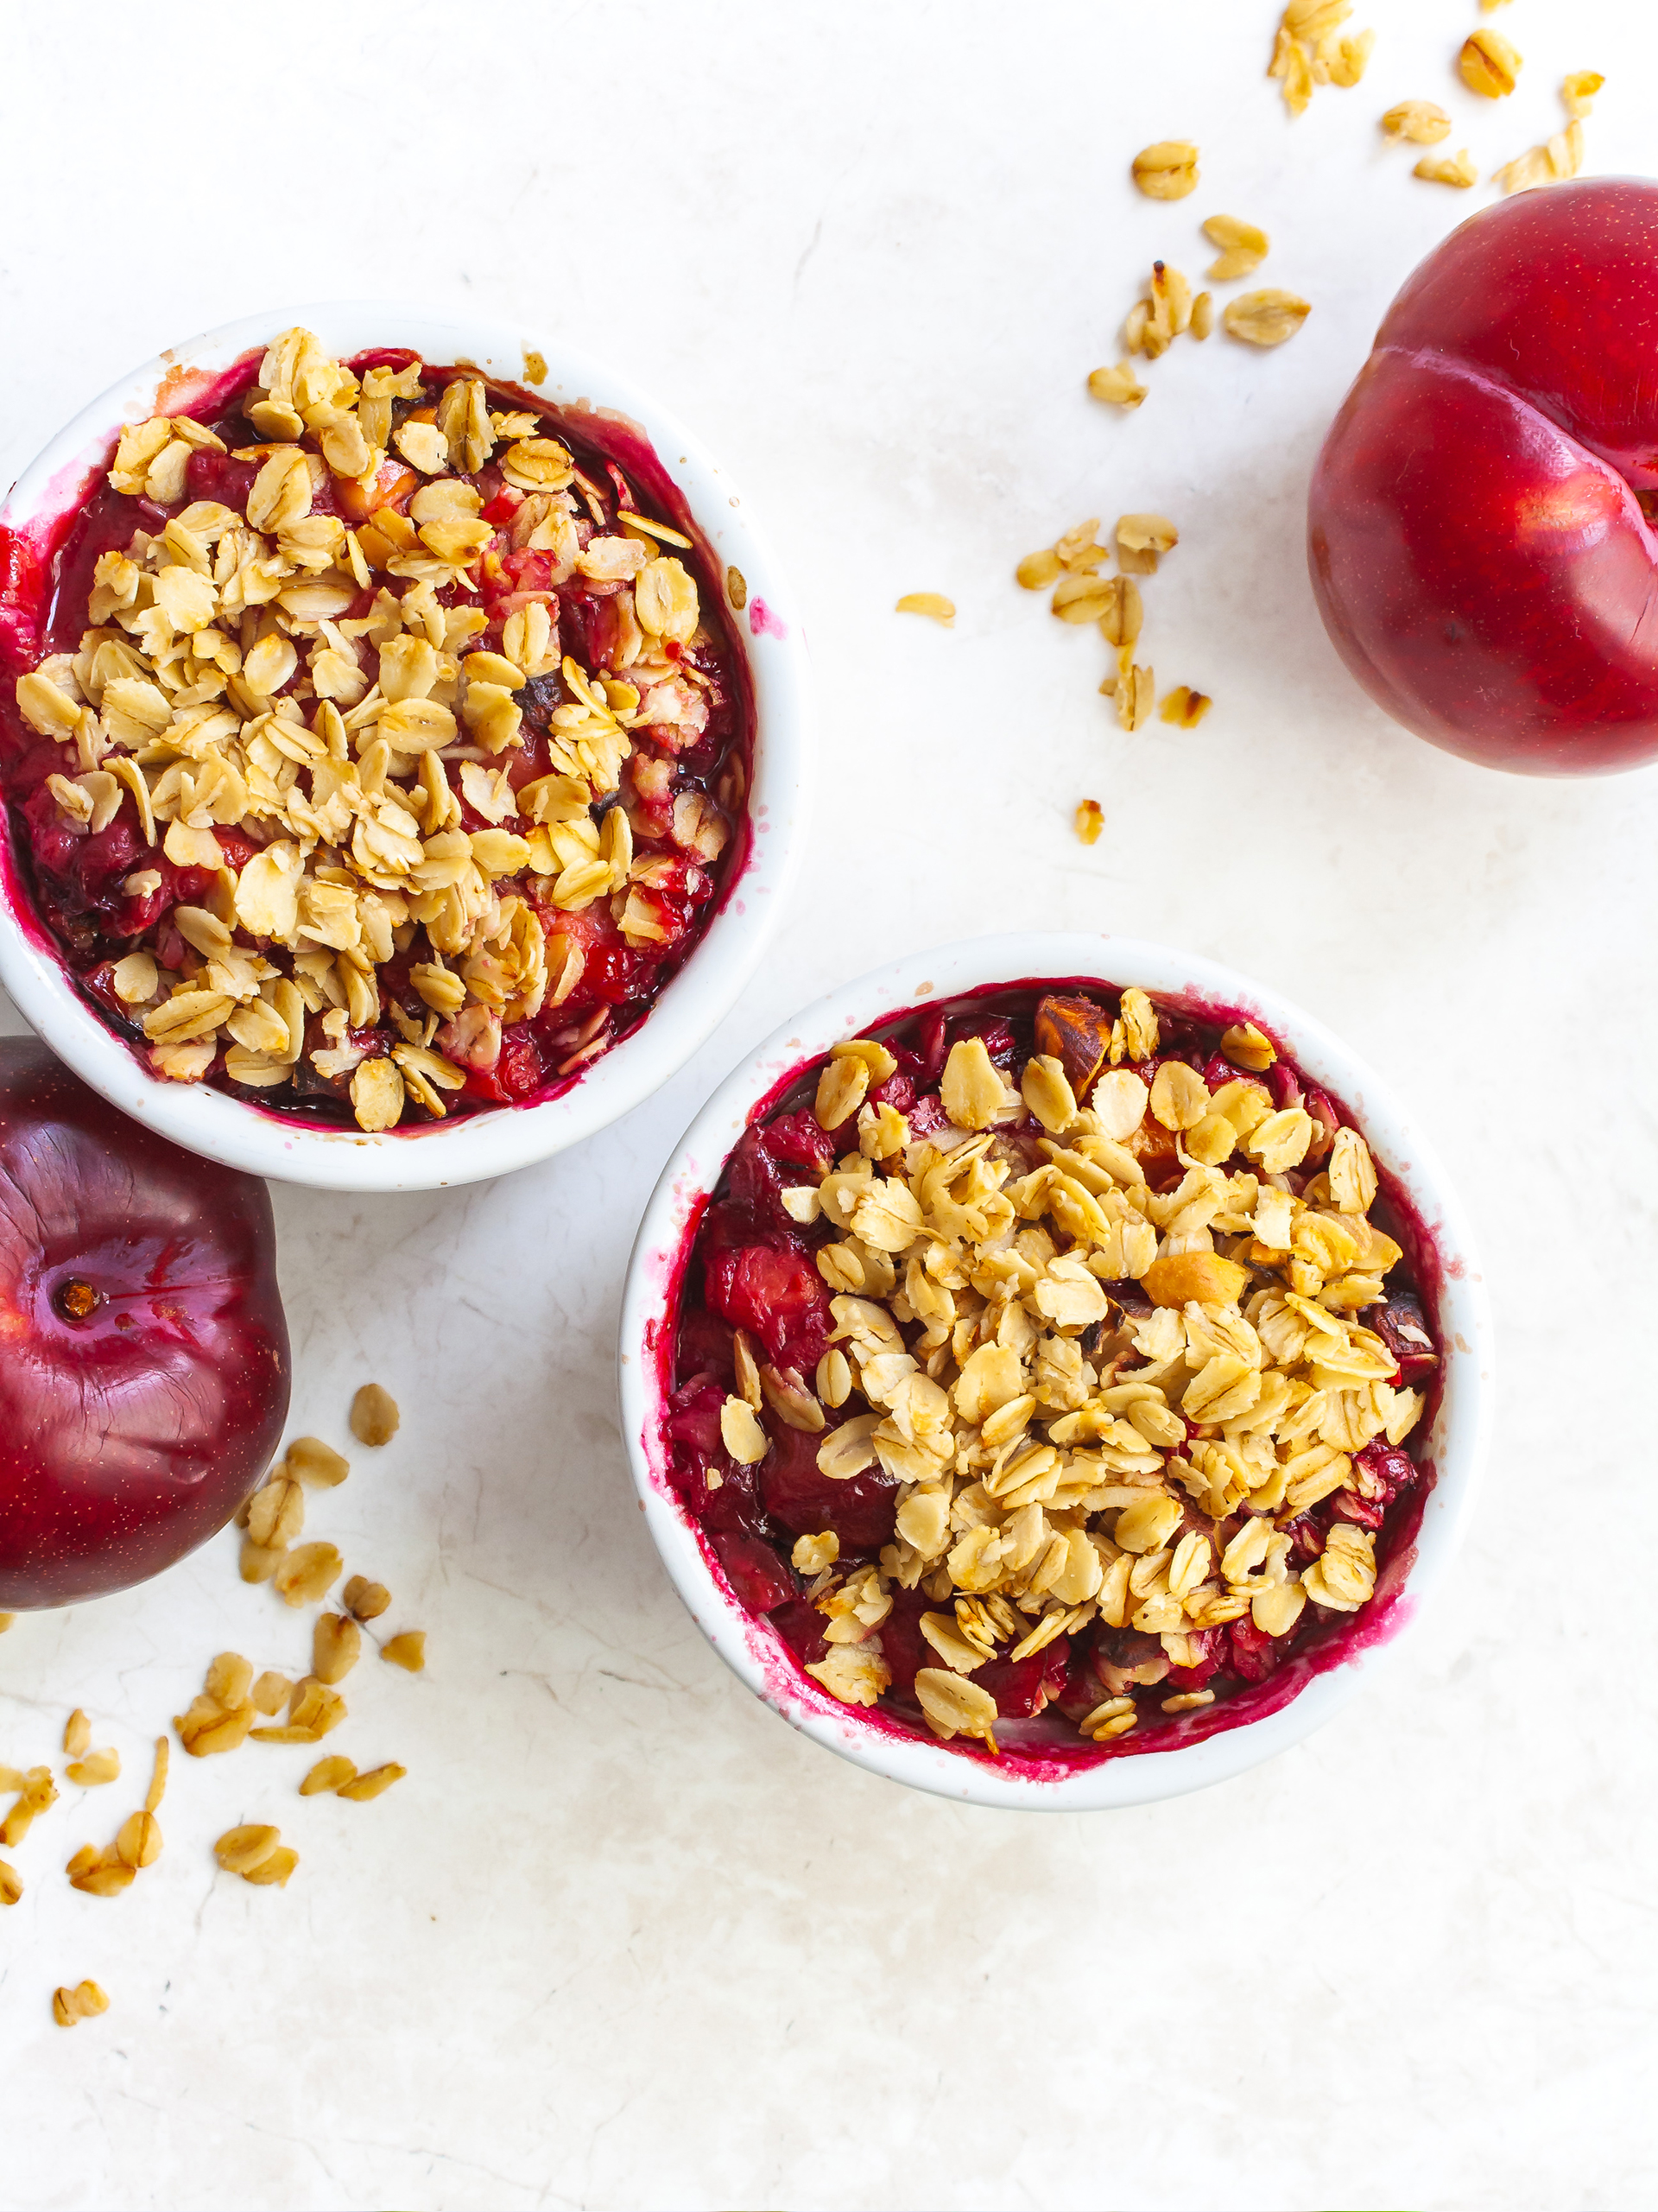 Healthy Vegan Plum Crumble Recipe Preview